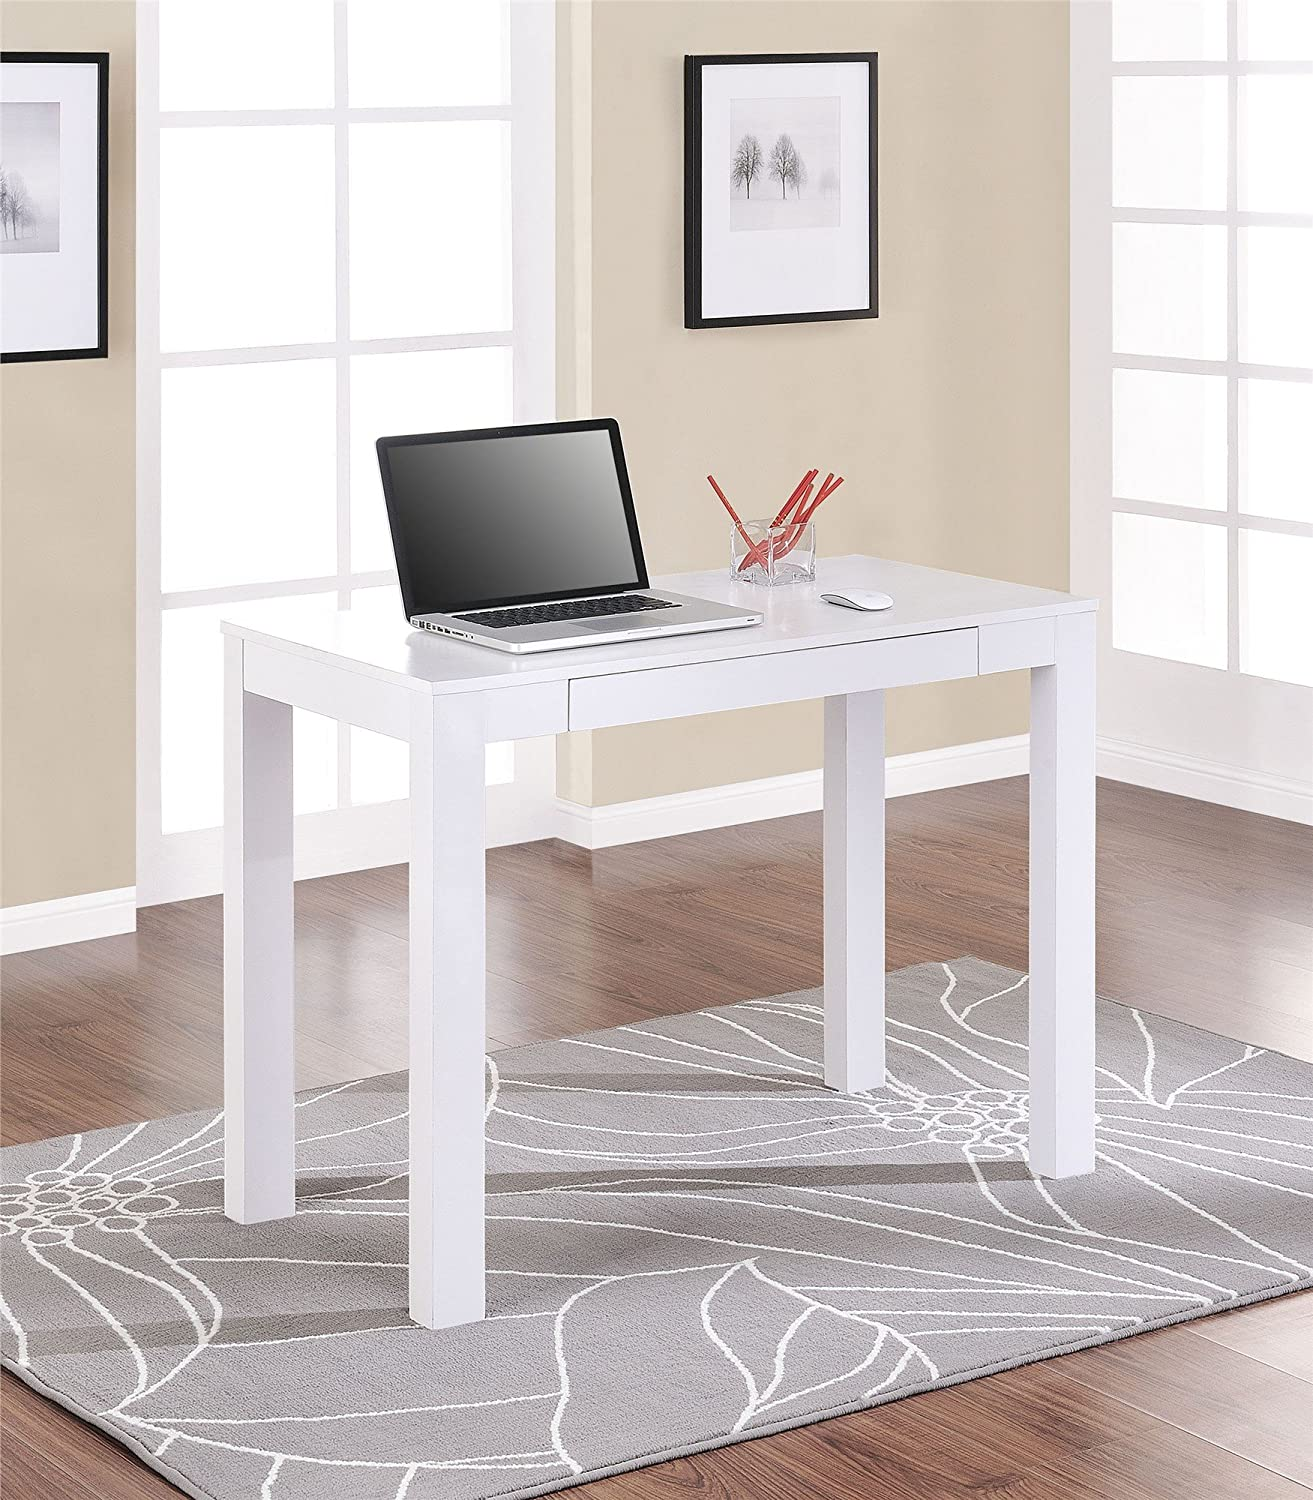 The Condo Project: 12 Minimalist White Desks to Buy or DIY for Under $250   Poor & Pretty